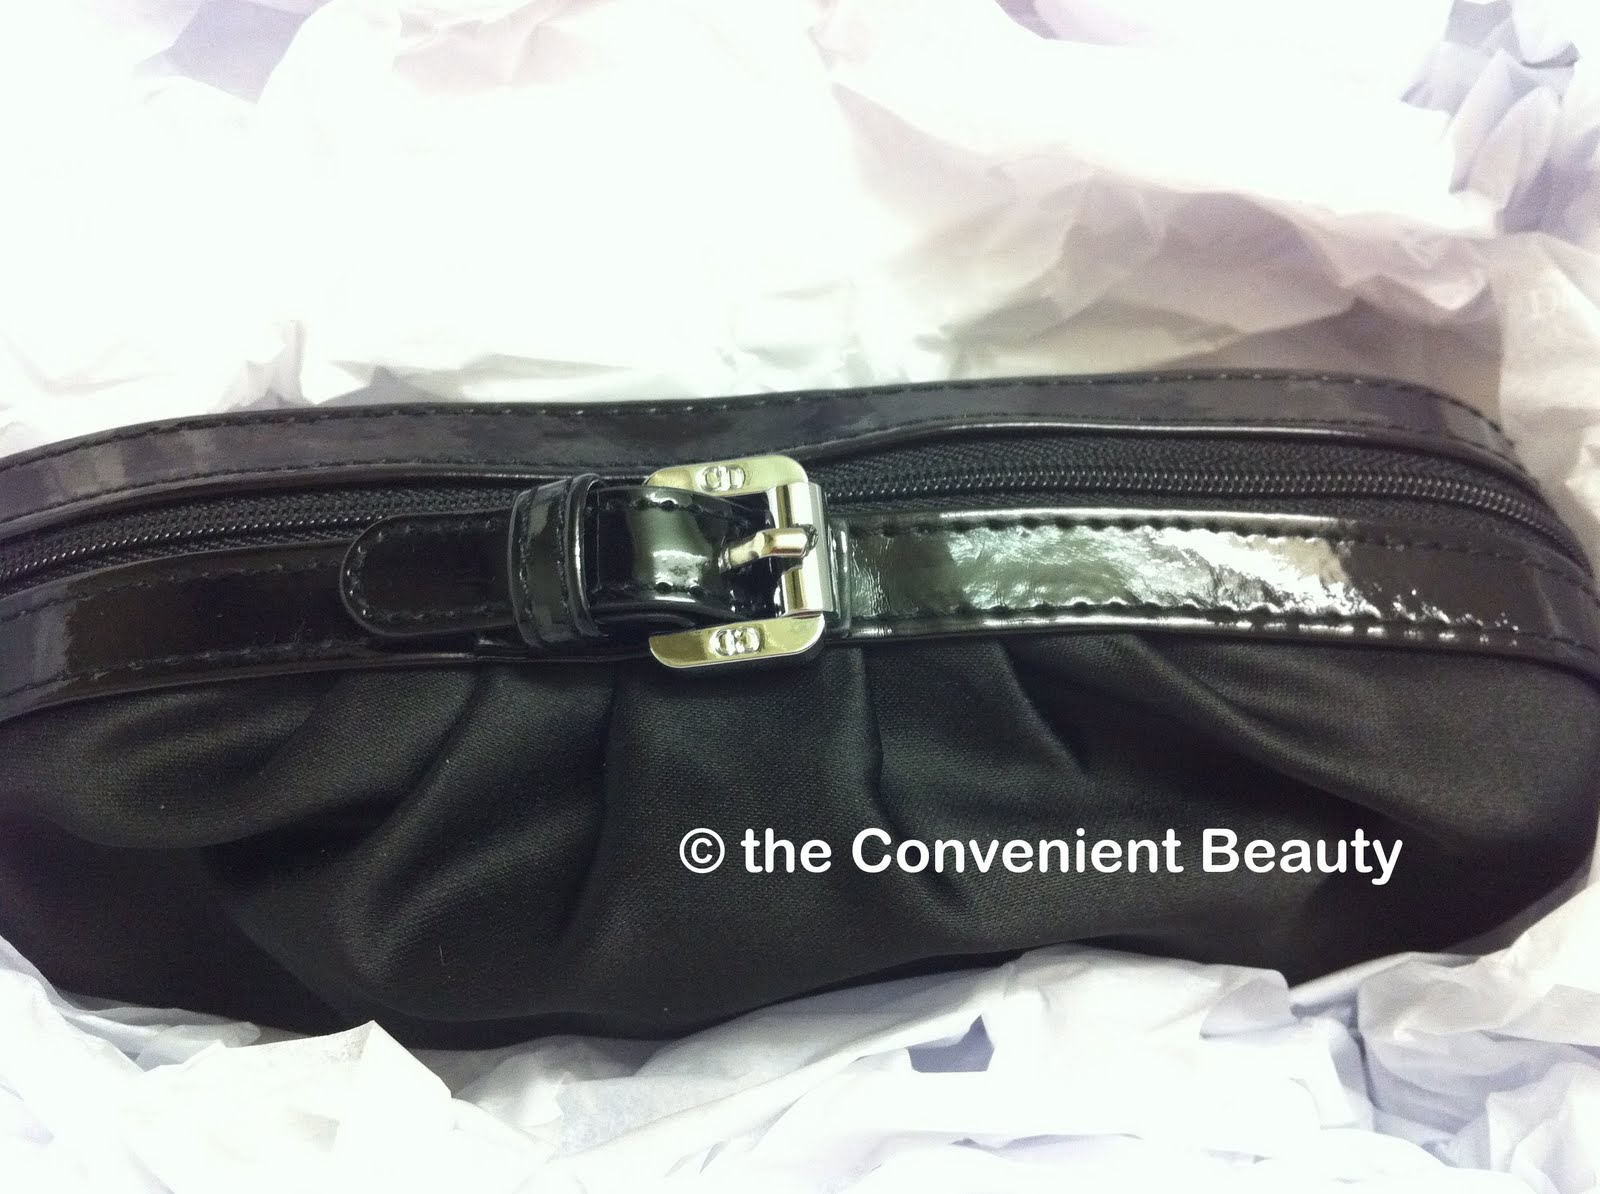 The Convenient Beauty: Dior Diva Gift